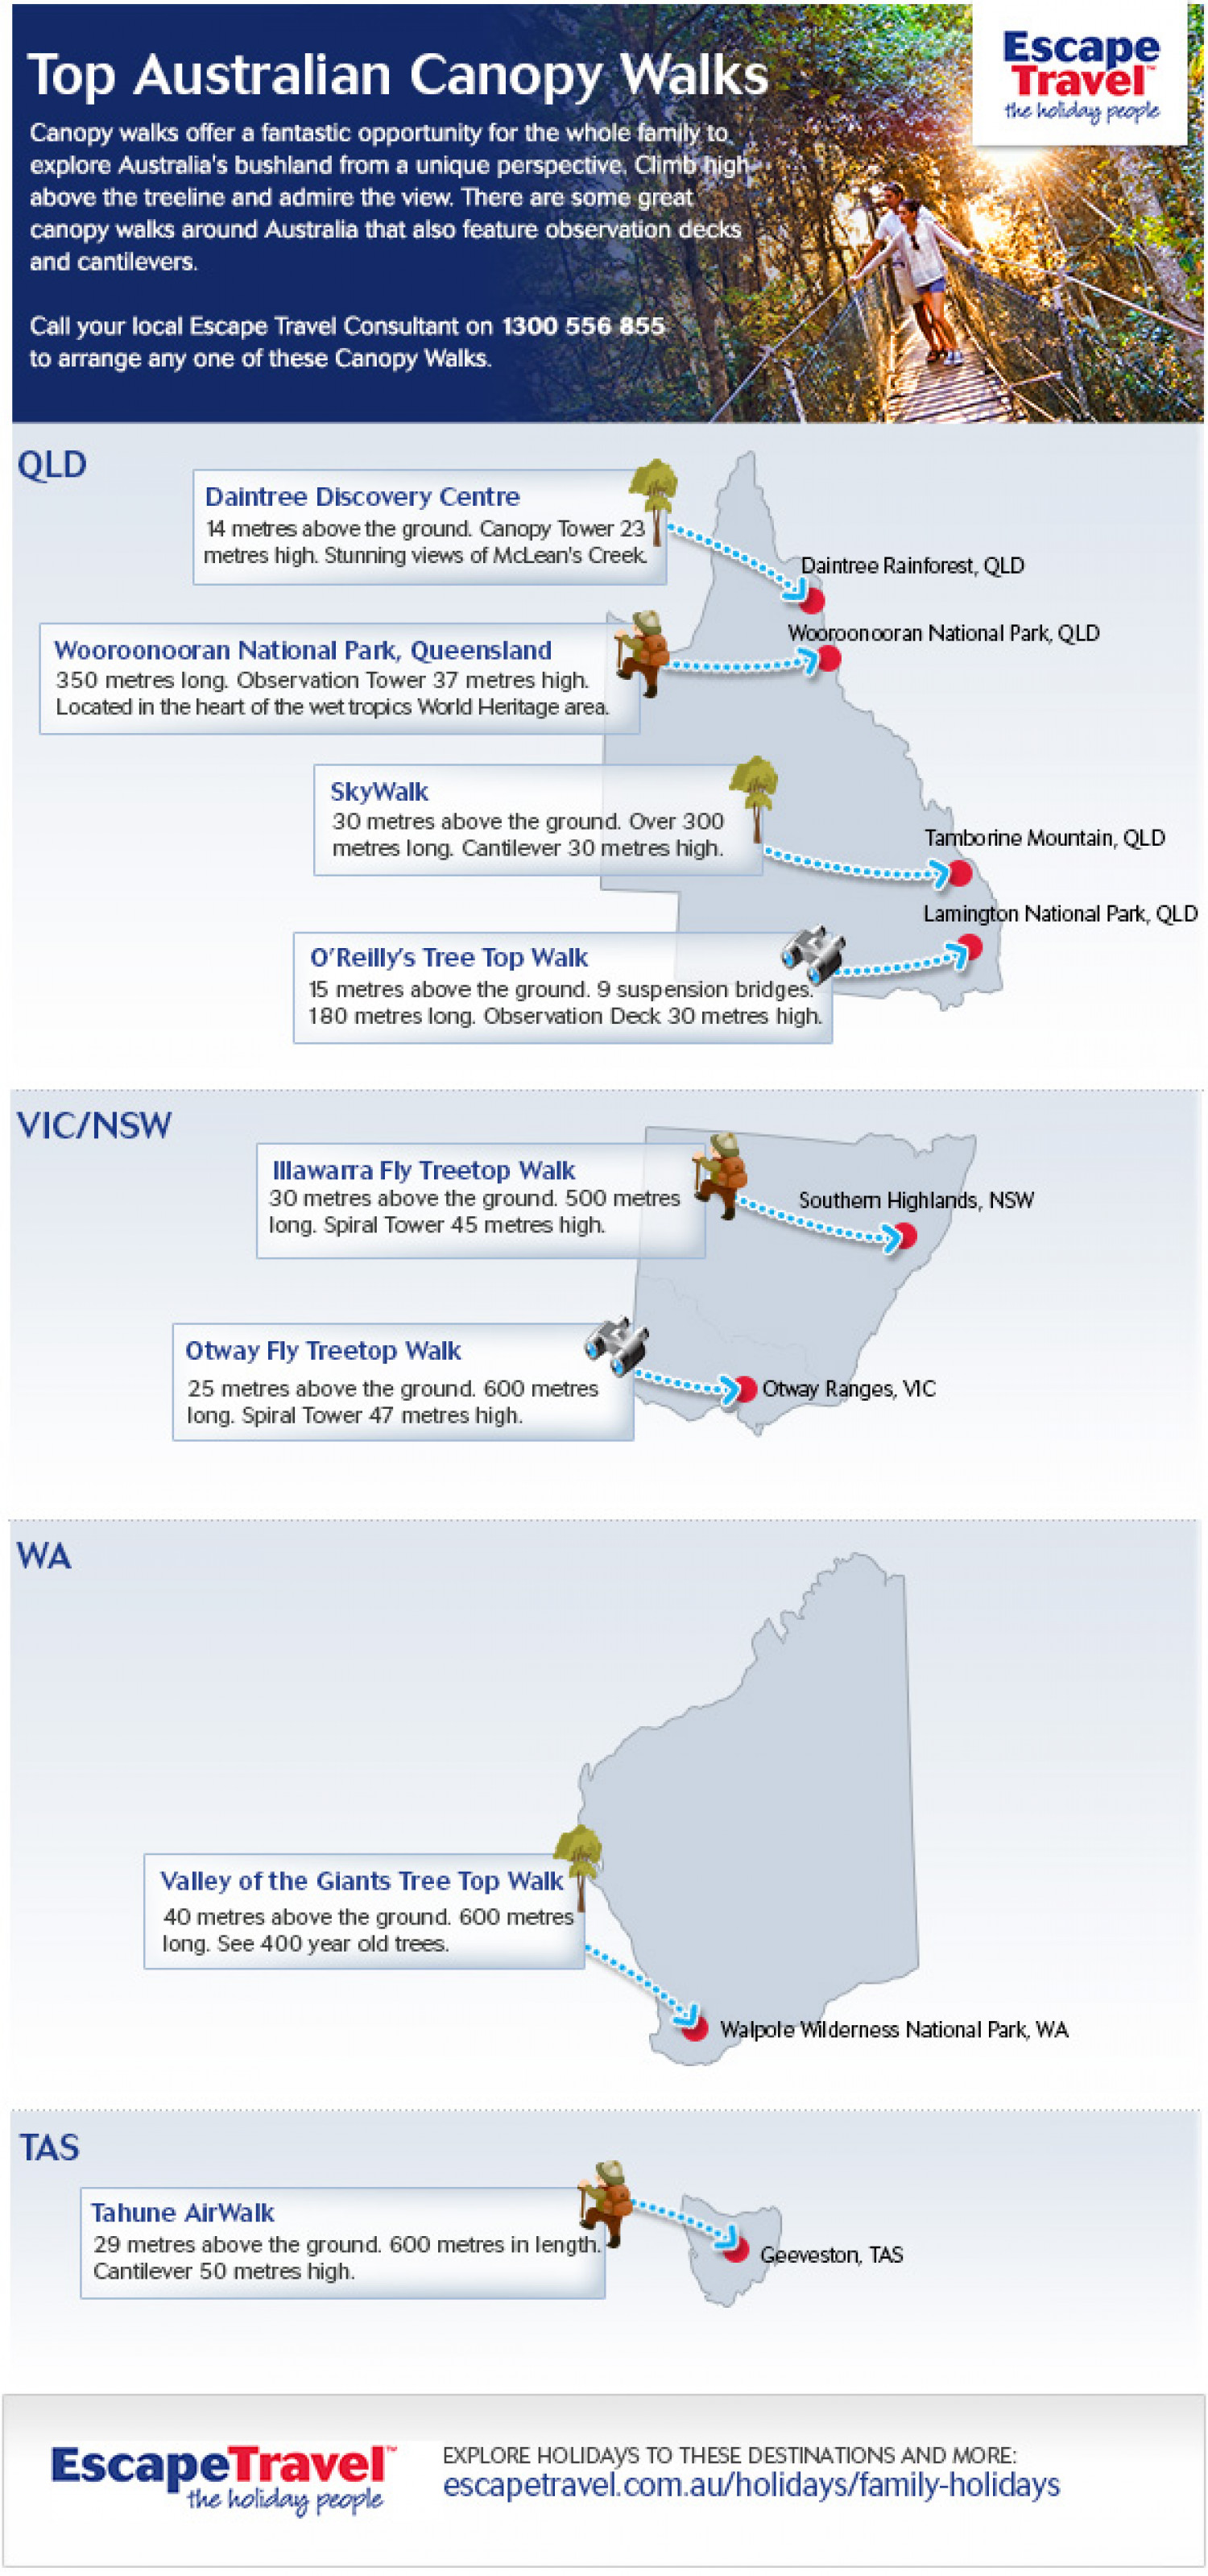 Top Canopy Walks Around Australia Infographic